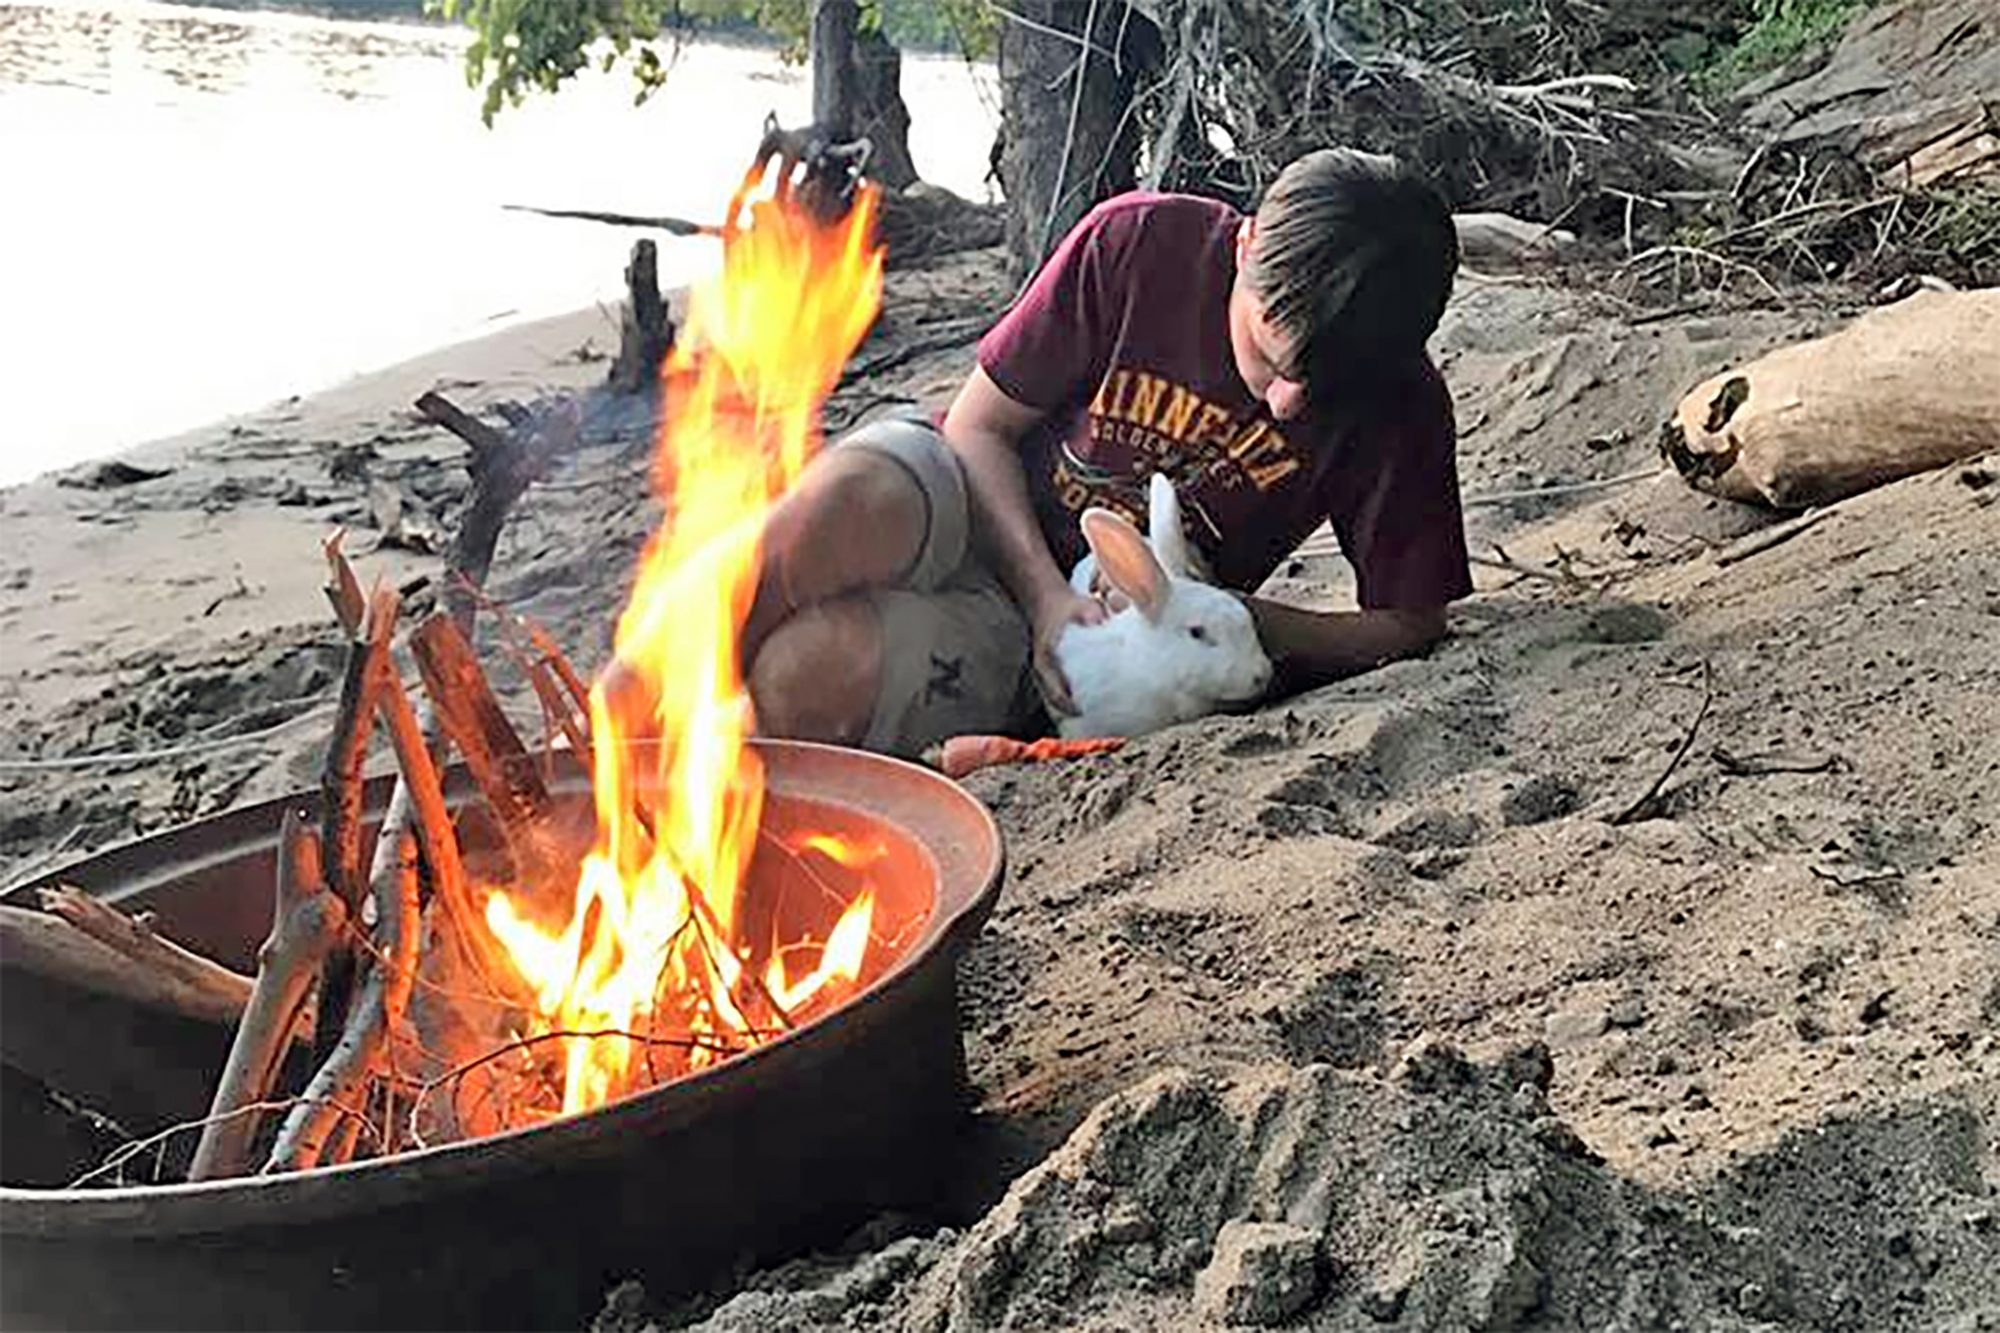 Caleb sitting on the beach with a white bunny in front of a fire